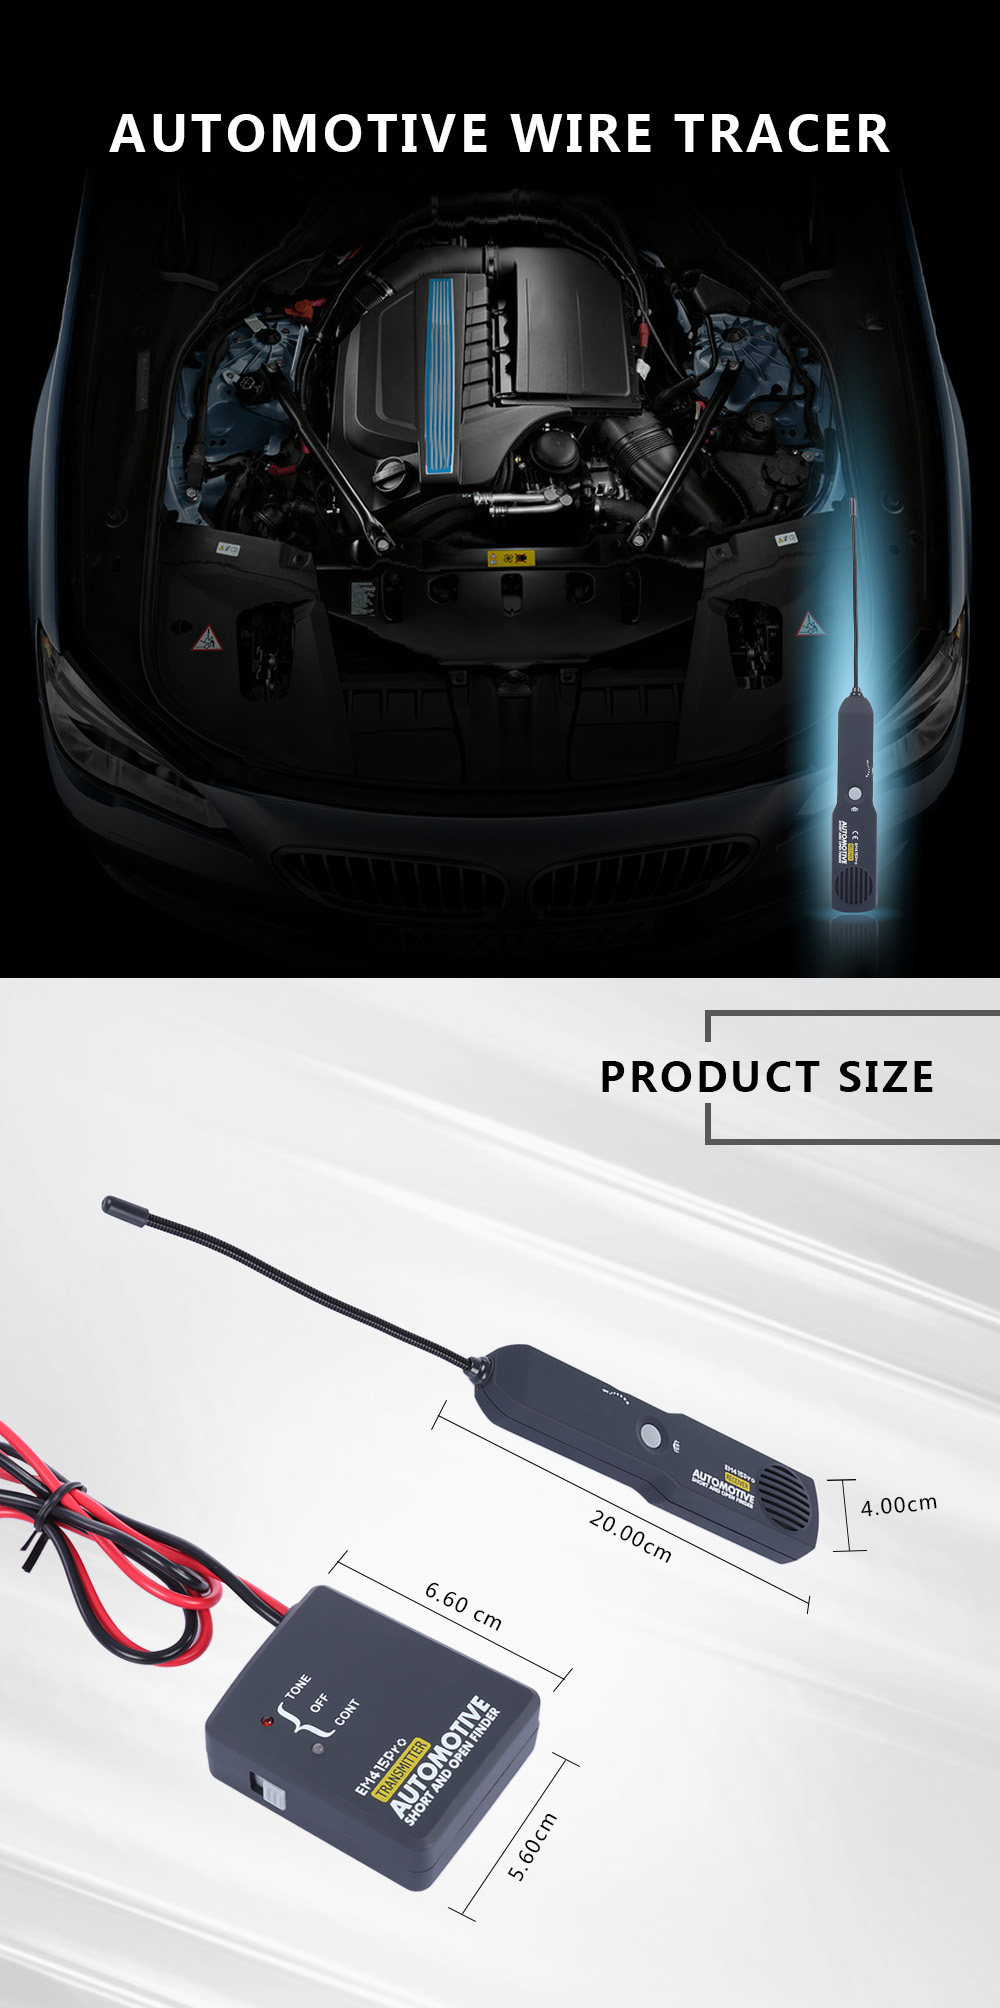 Short / Open Circuit Wire Tracker Electronic Measuring Tool for Automobile